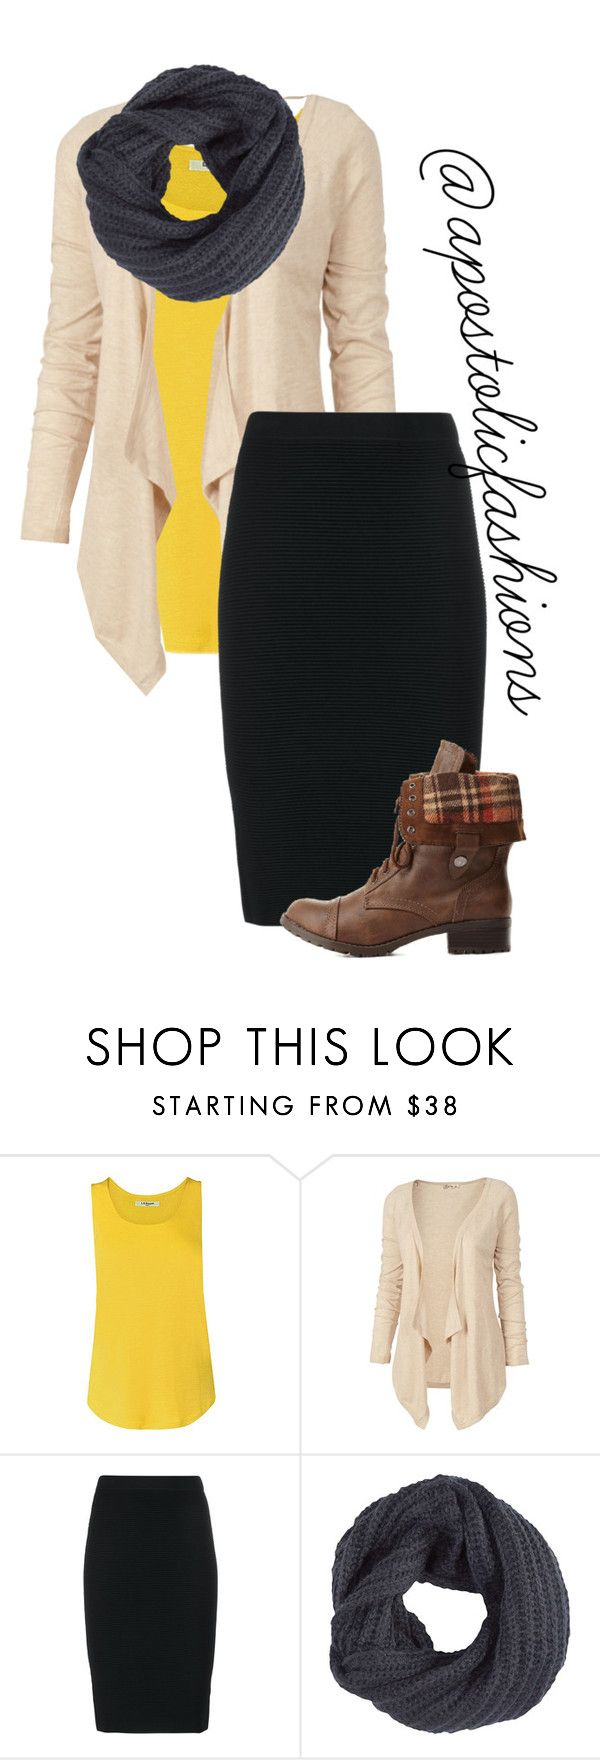 """Apostolic Fashions #1329"" by apostolicfashions on Polyvore featuring Fat Face, Jonathan Simkhai, Pistil, Charlotte Russe, modestlykay and modestlywhit"